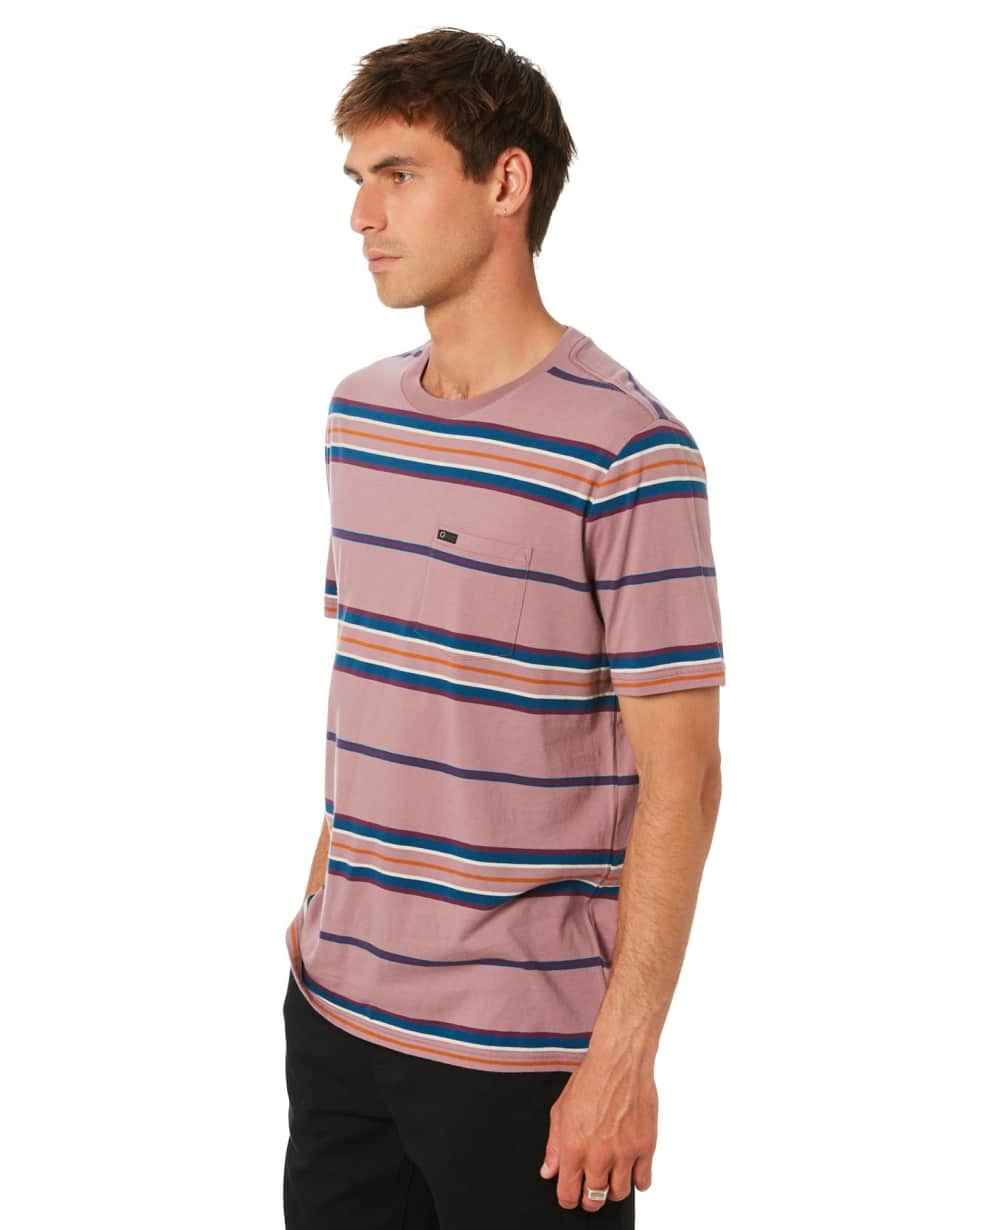 BRIXTON HILT S/S POCKET KNIT - WASHED CONCORD | T-Shirt by Brixton 3